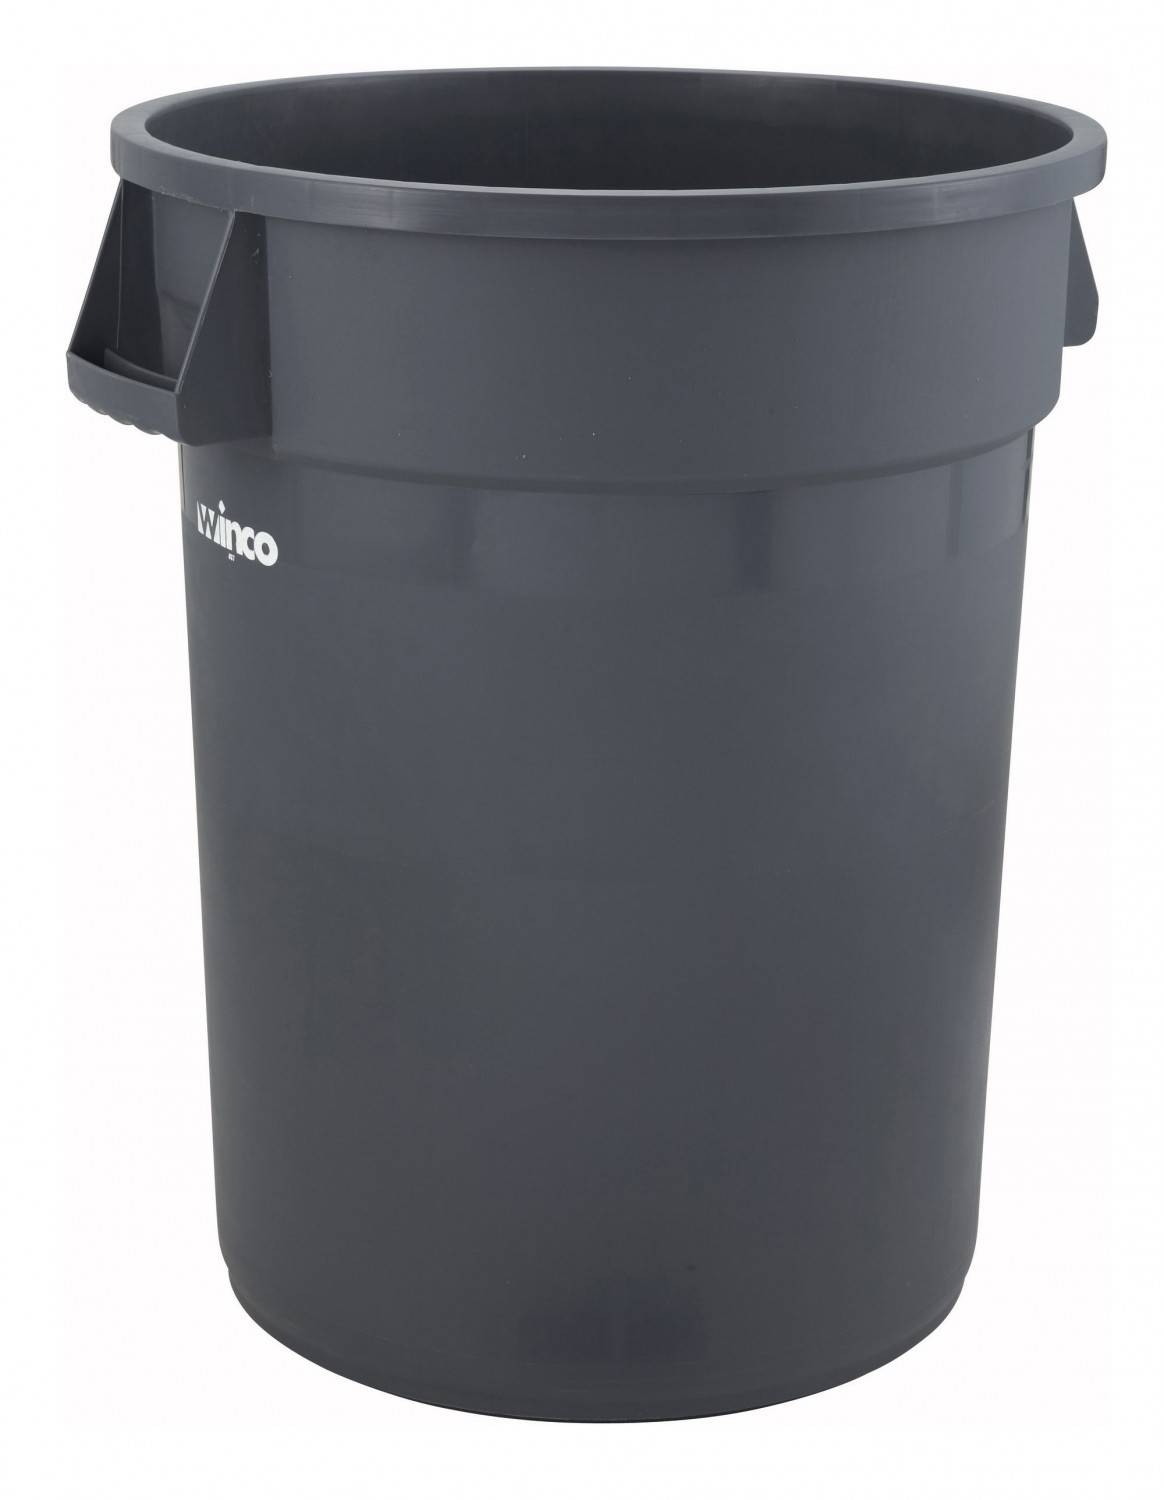 Winco PTC-44G 44 Gallon Grey Trash Can